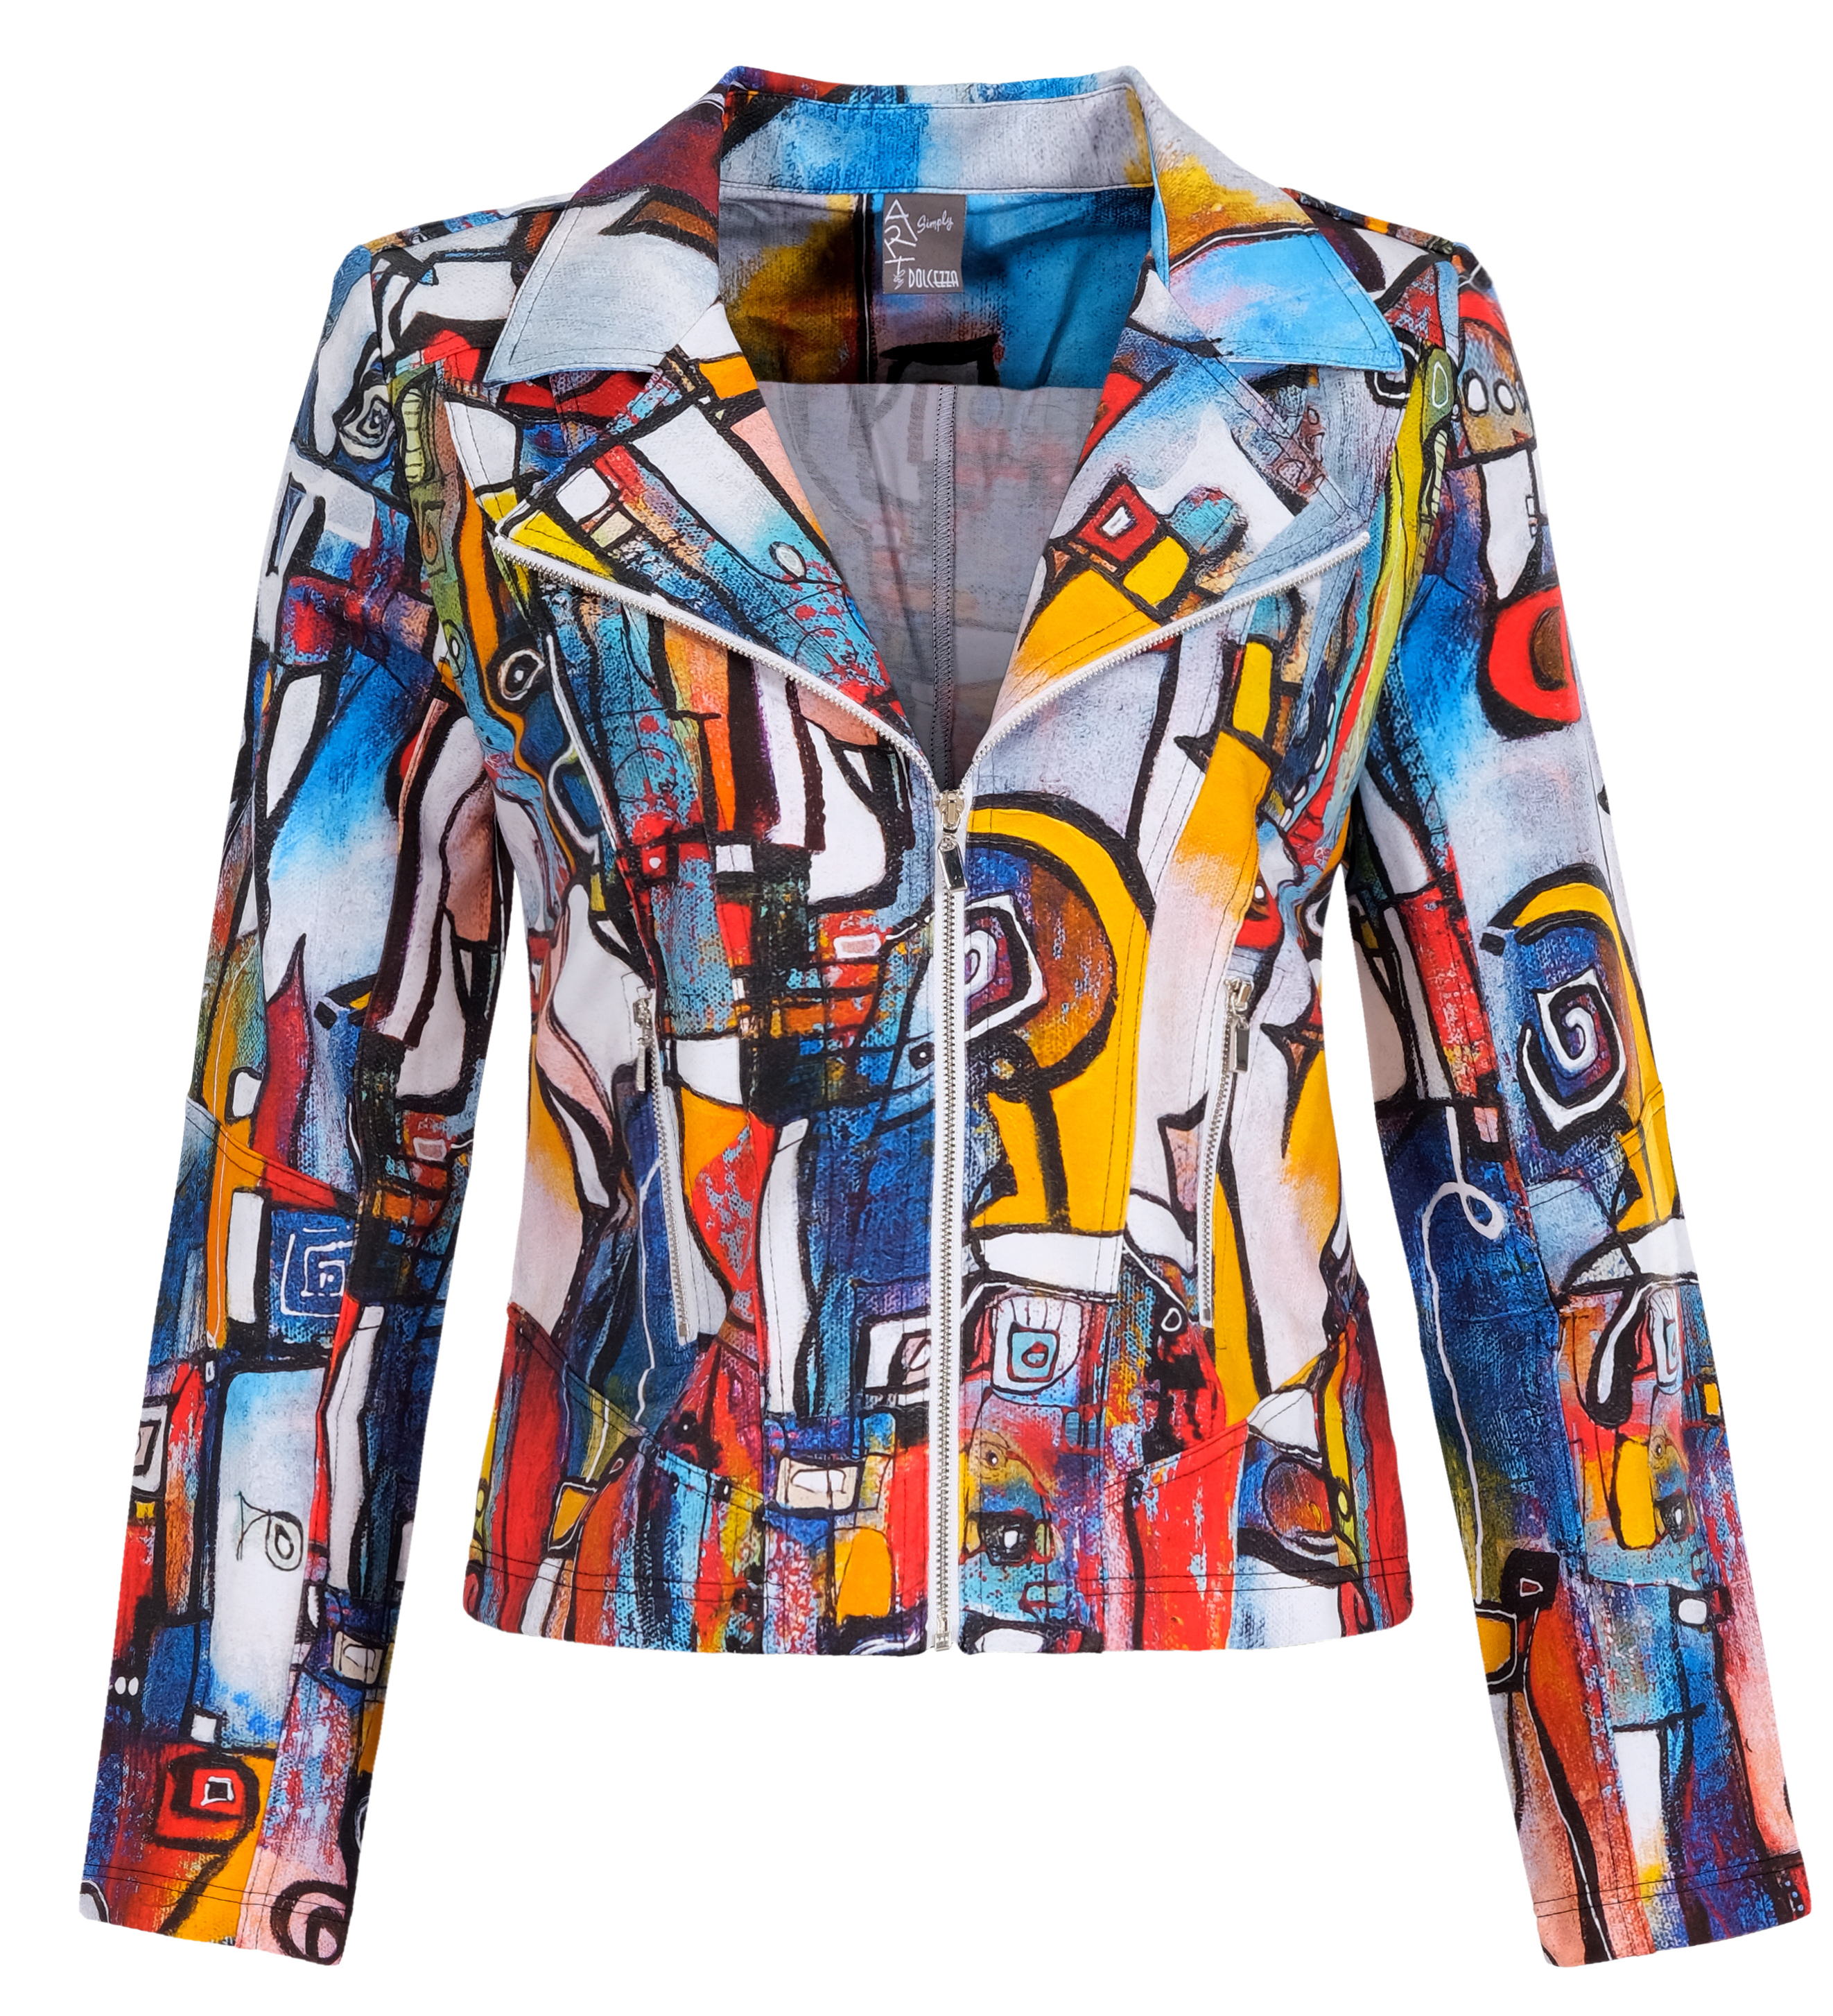 Simply Art Dolcezza: It's Complicated Crazy Cool Abstract Art Soft Denim Zip Jacket SOLD OUT Dolcezza_SimplyArt_21717